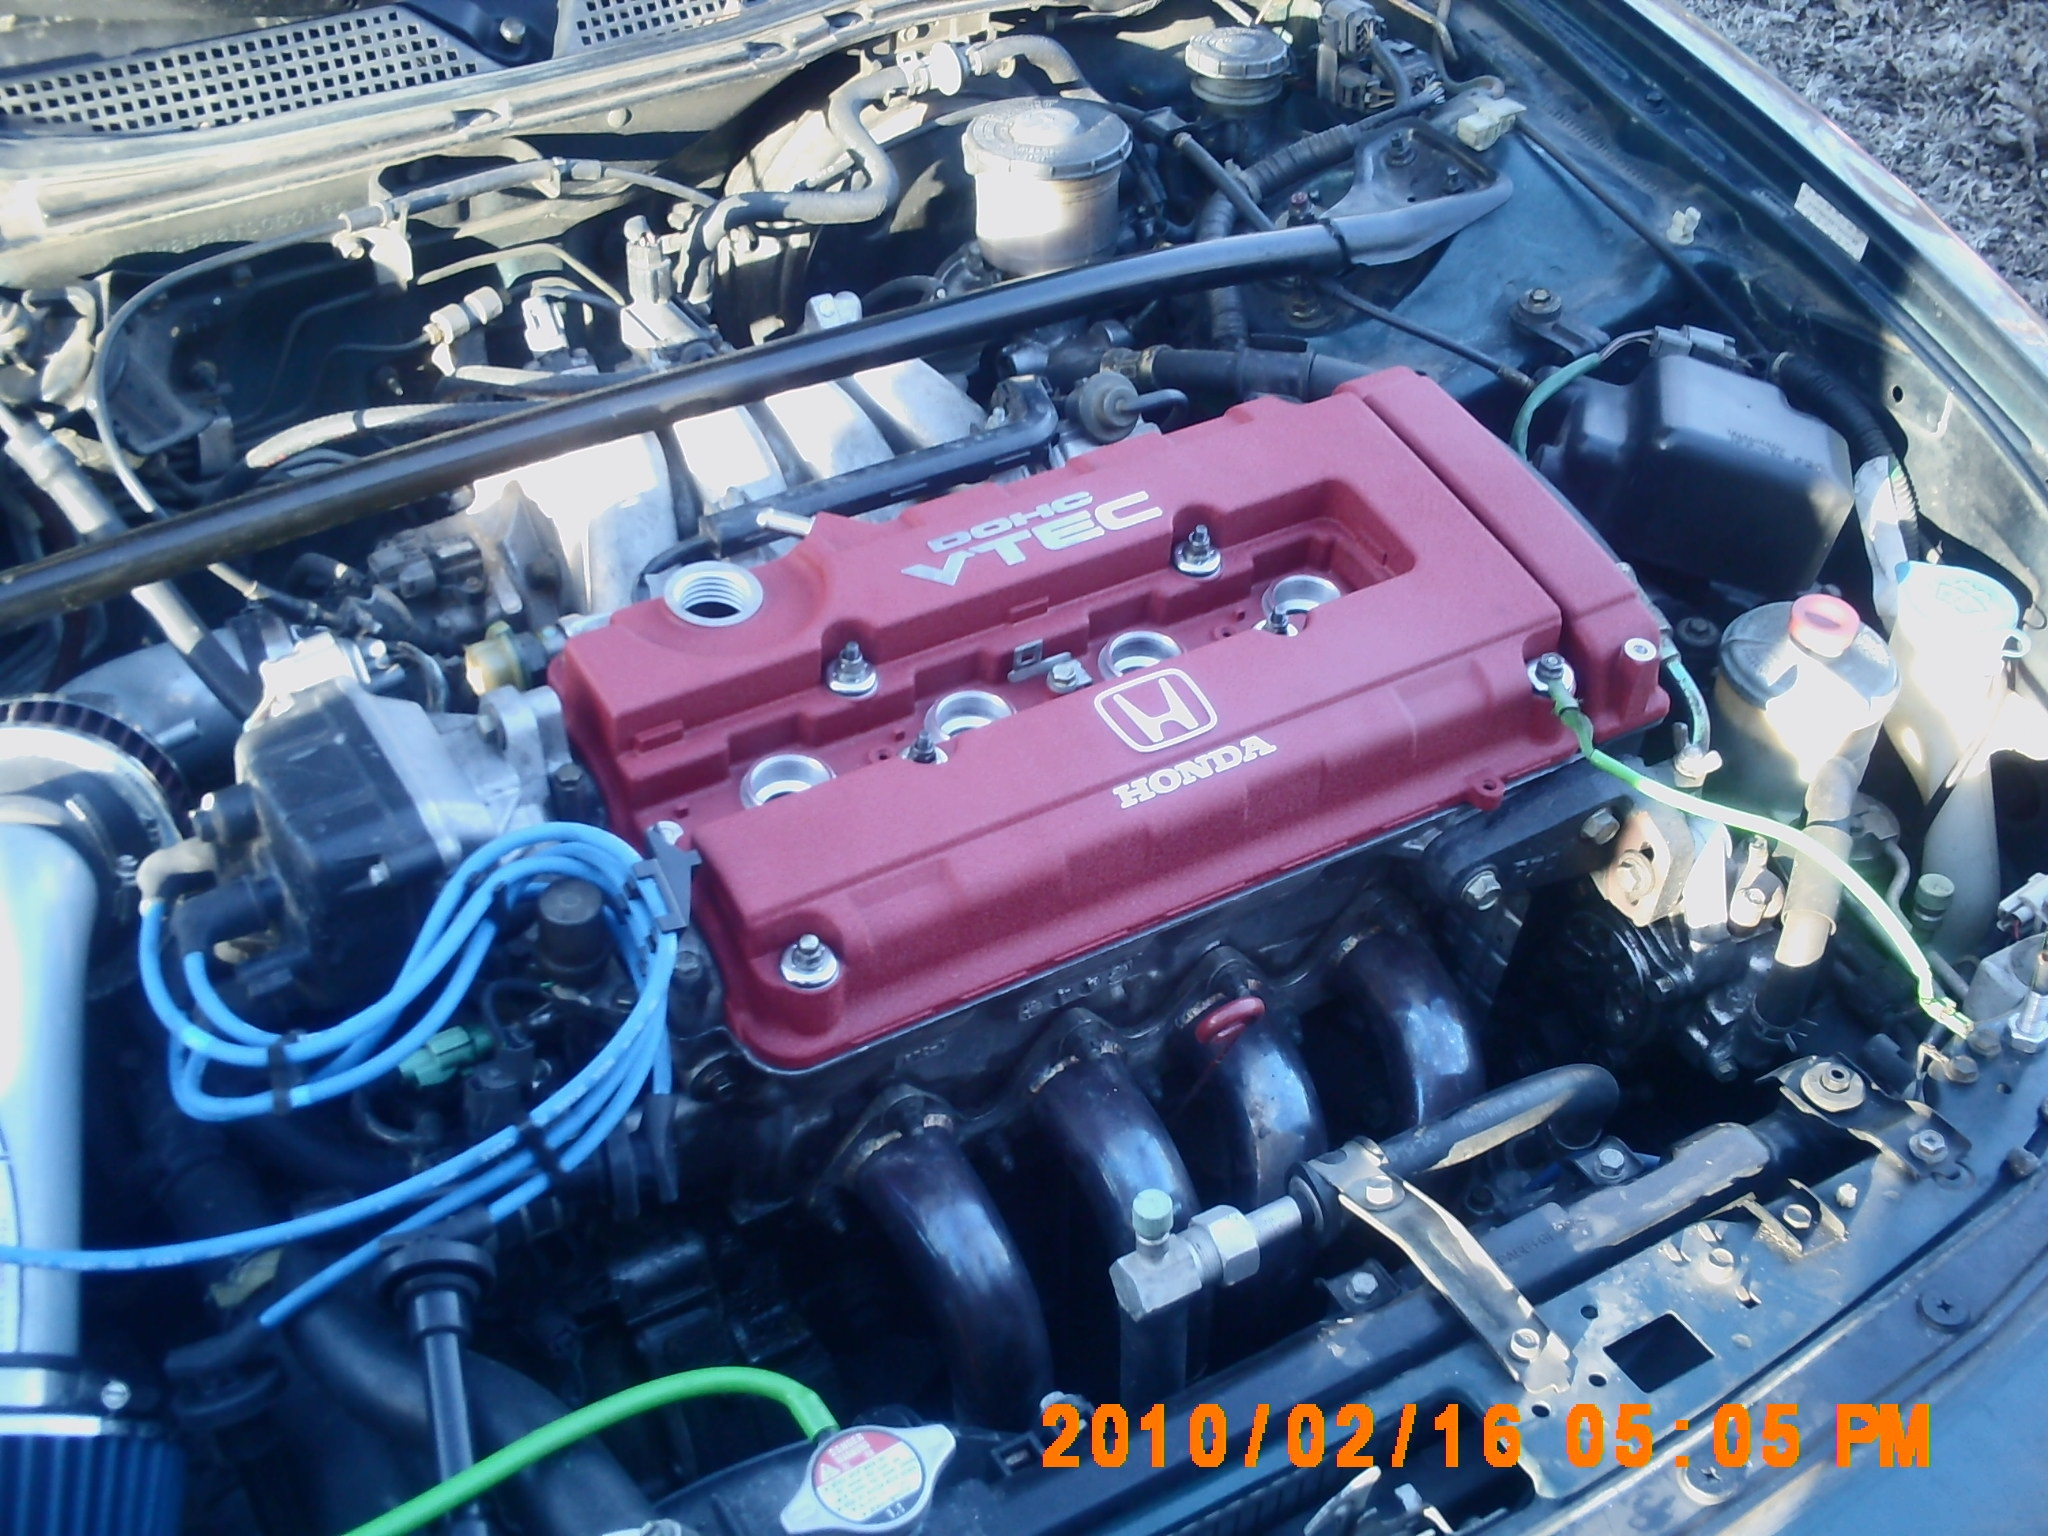 Another team_oasis 1996 Acura Integra post... - 13310622